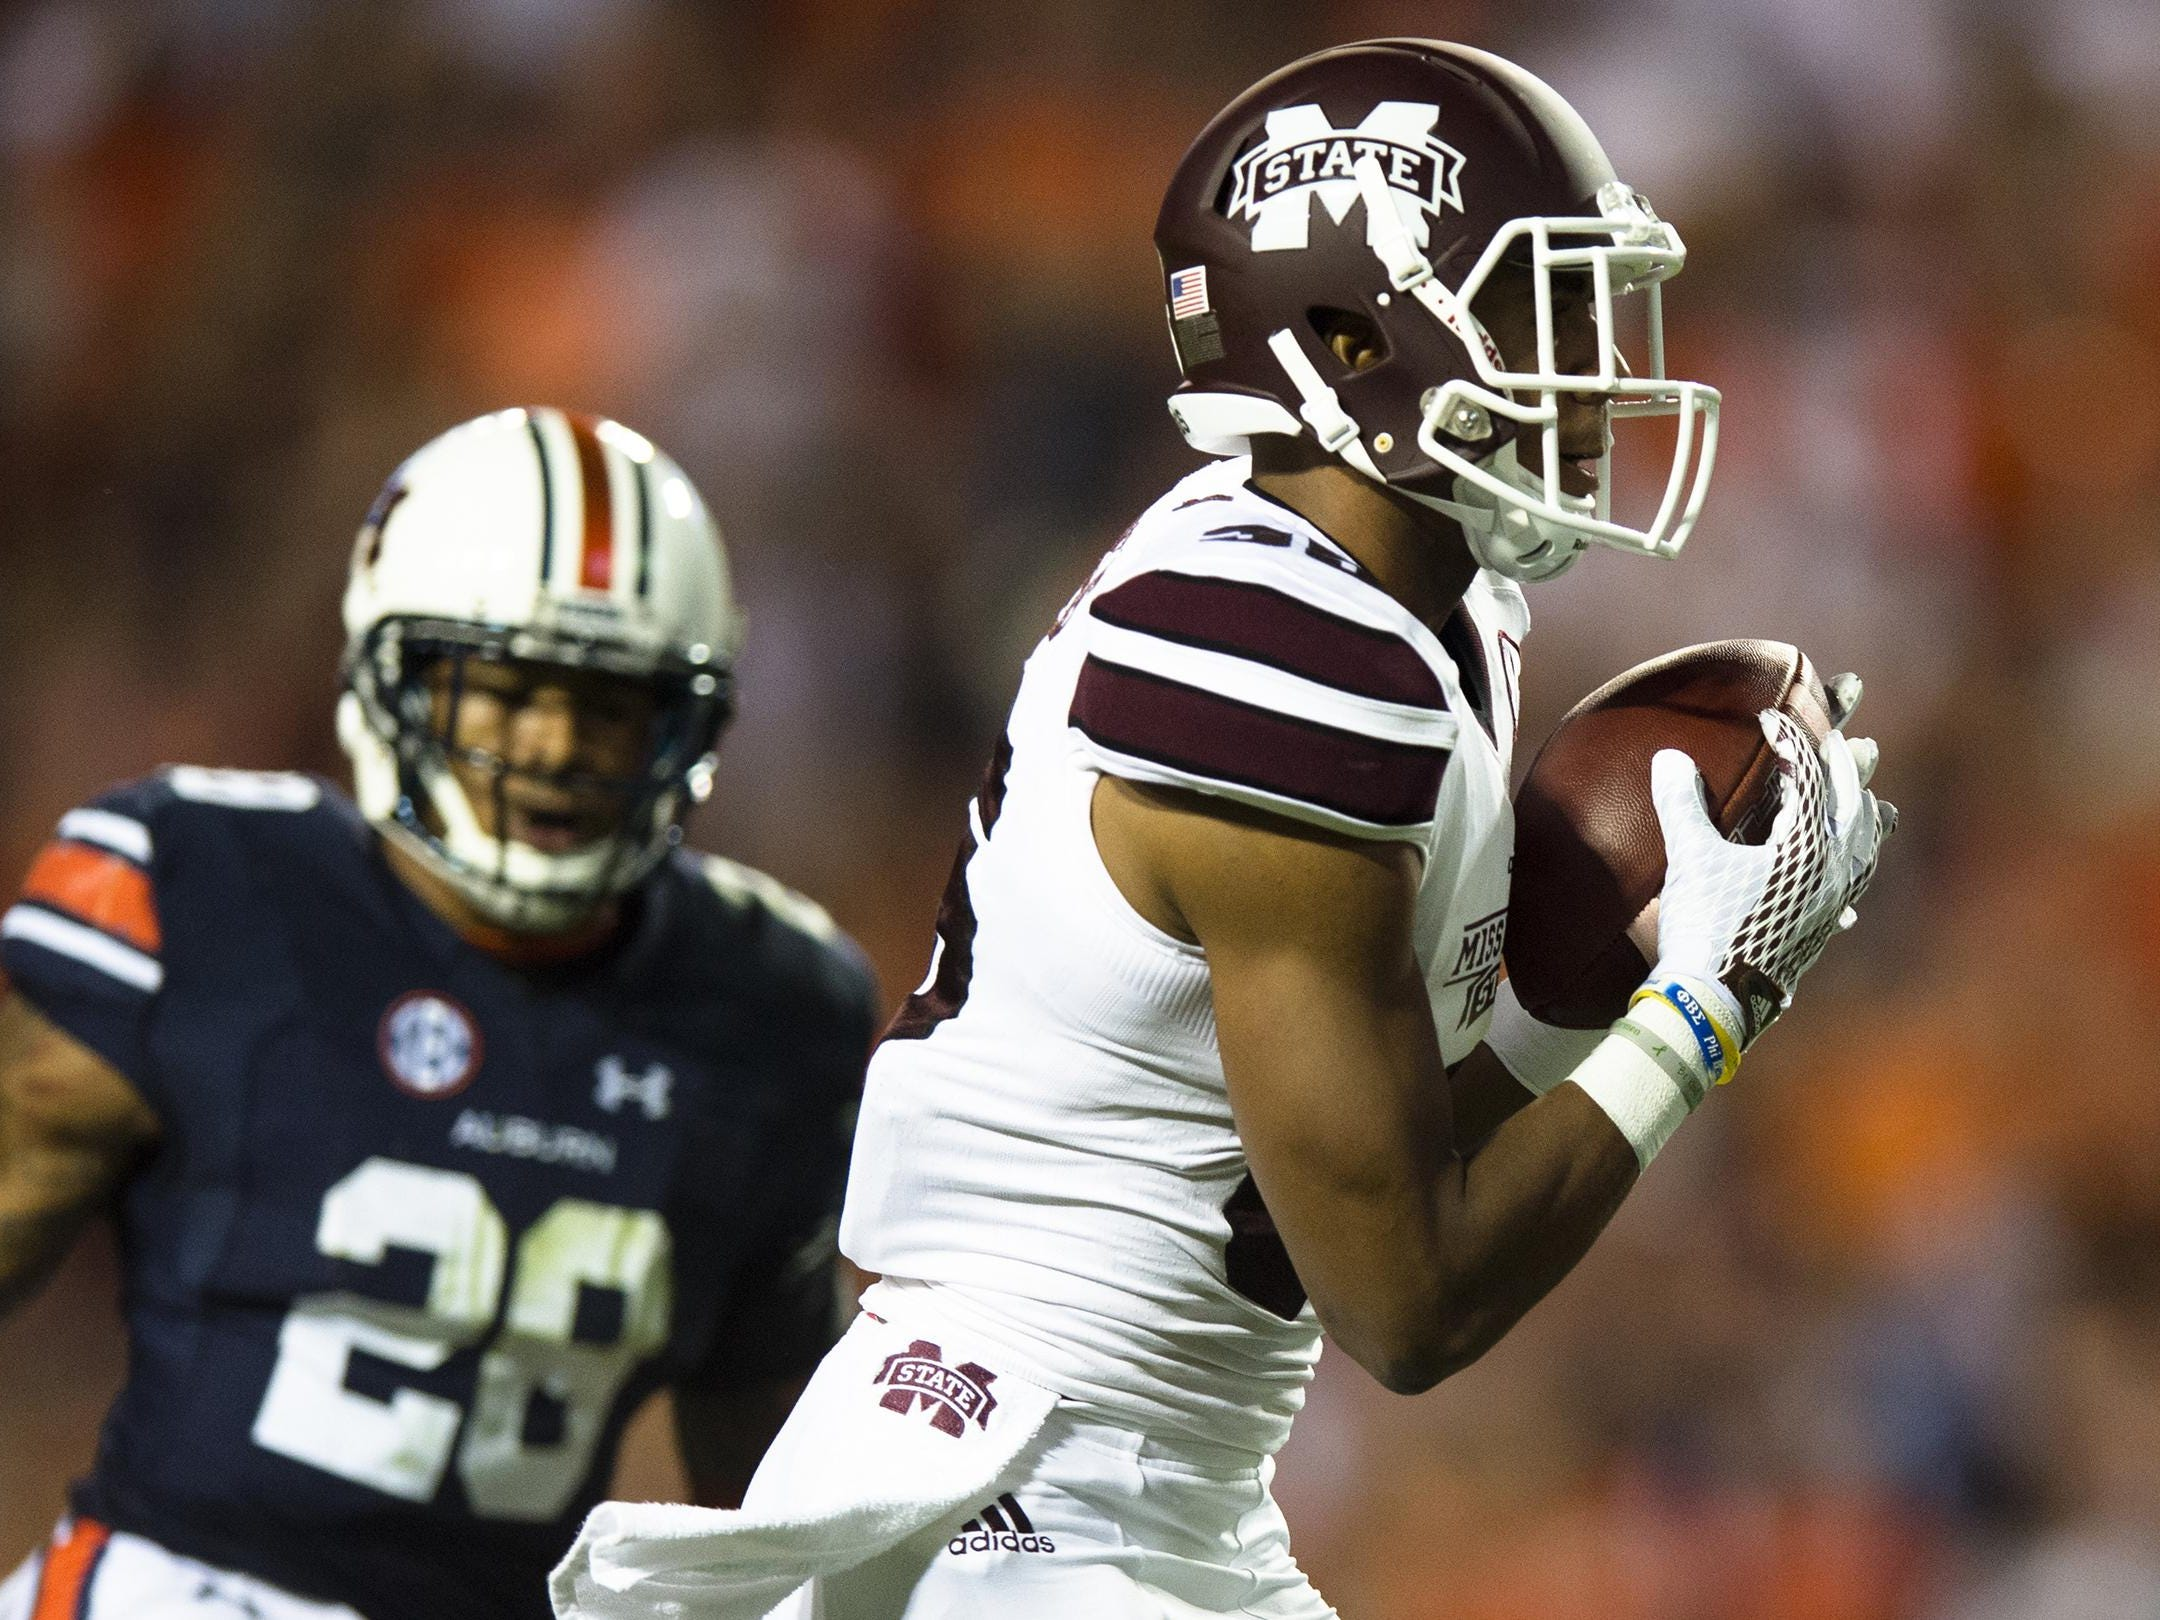 Mississippi State wide receiver Gabe Myles (35) catches a touchdown pass as Auburn defensive back Tray Matthews (28) looks on during the NCAA football game between Auburn and Mississippi State on Saturday, Sept. 26, 2015, at Jordan-Hare Stadium in Auburn, Ala. Albert Cesare / Advertiser